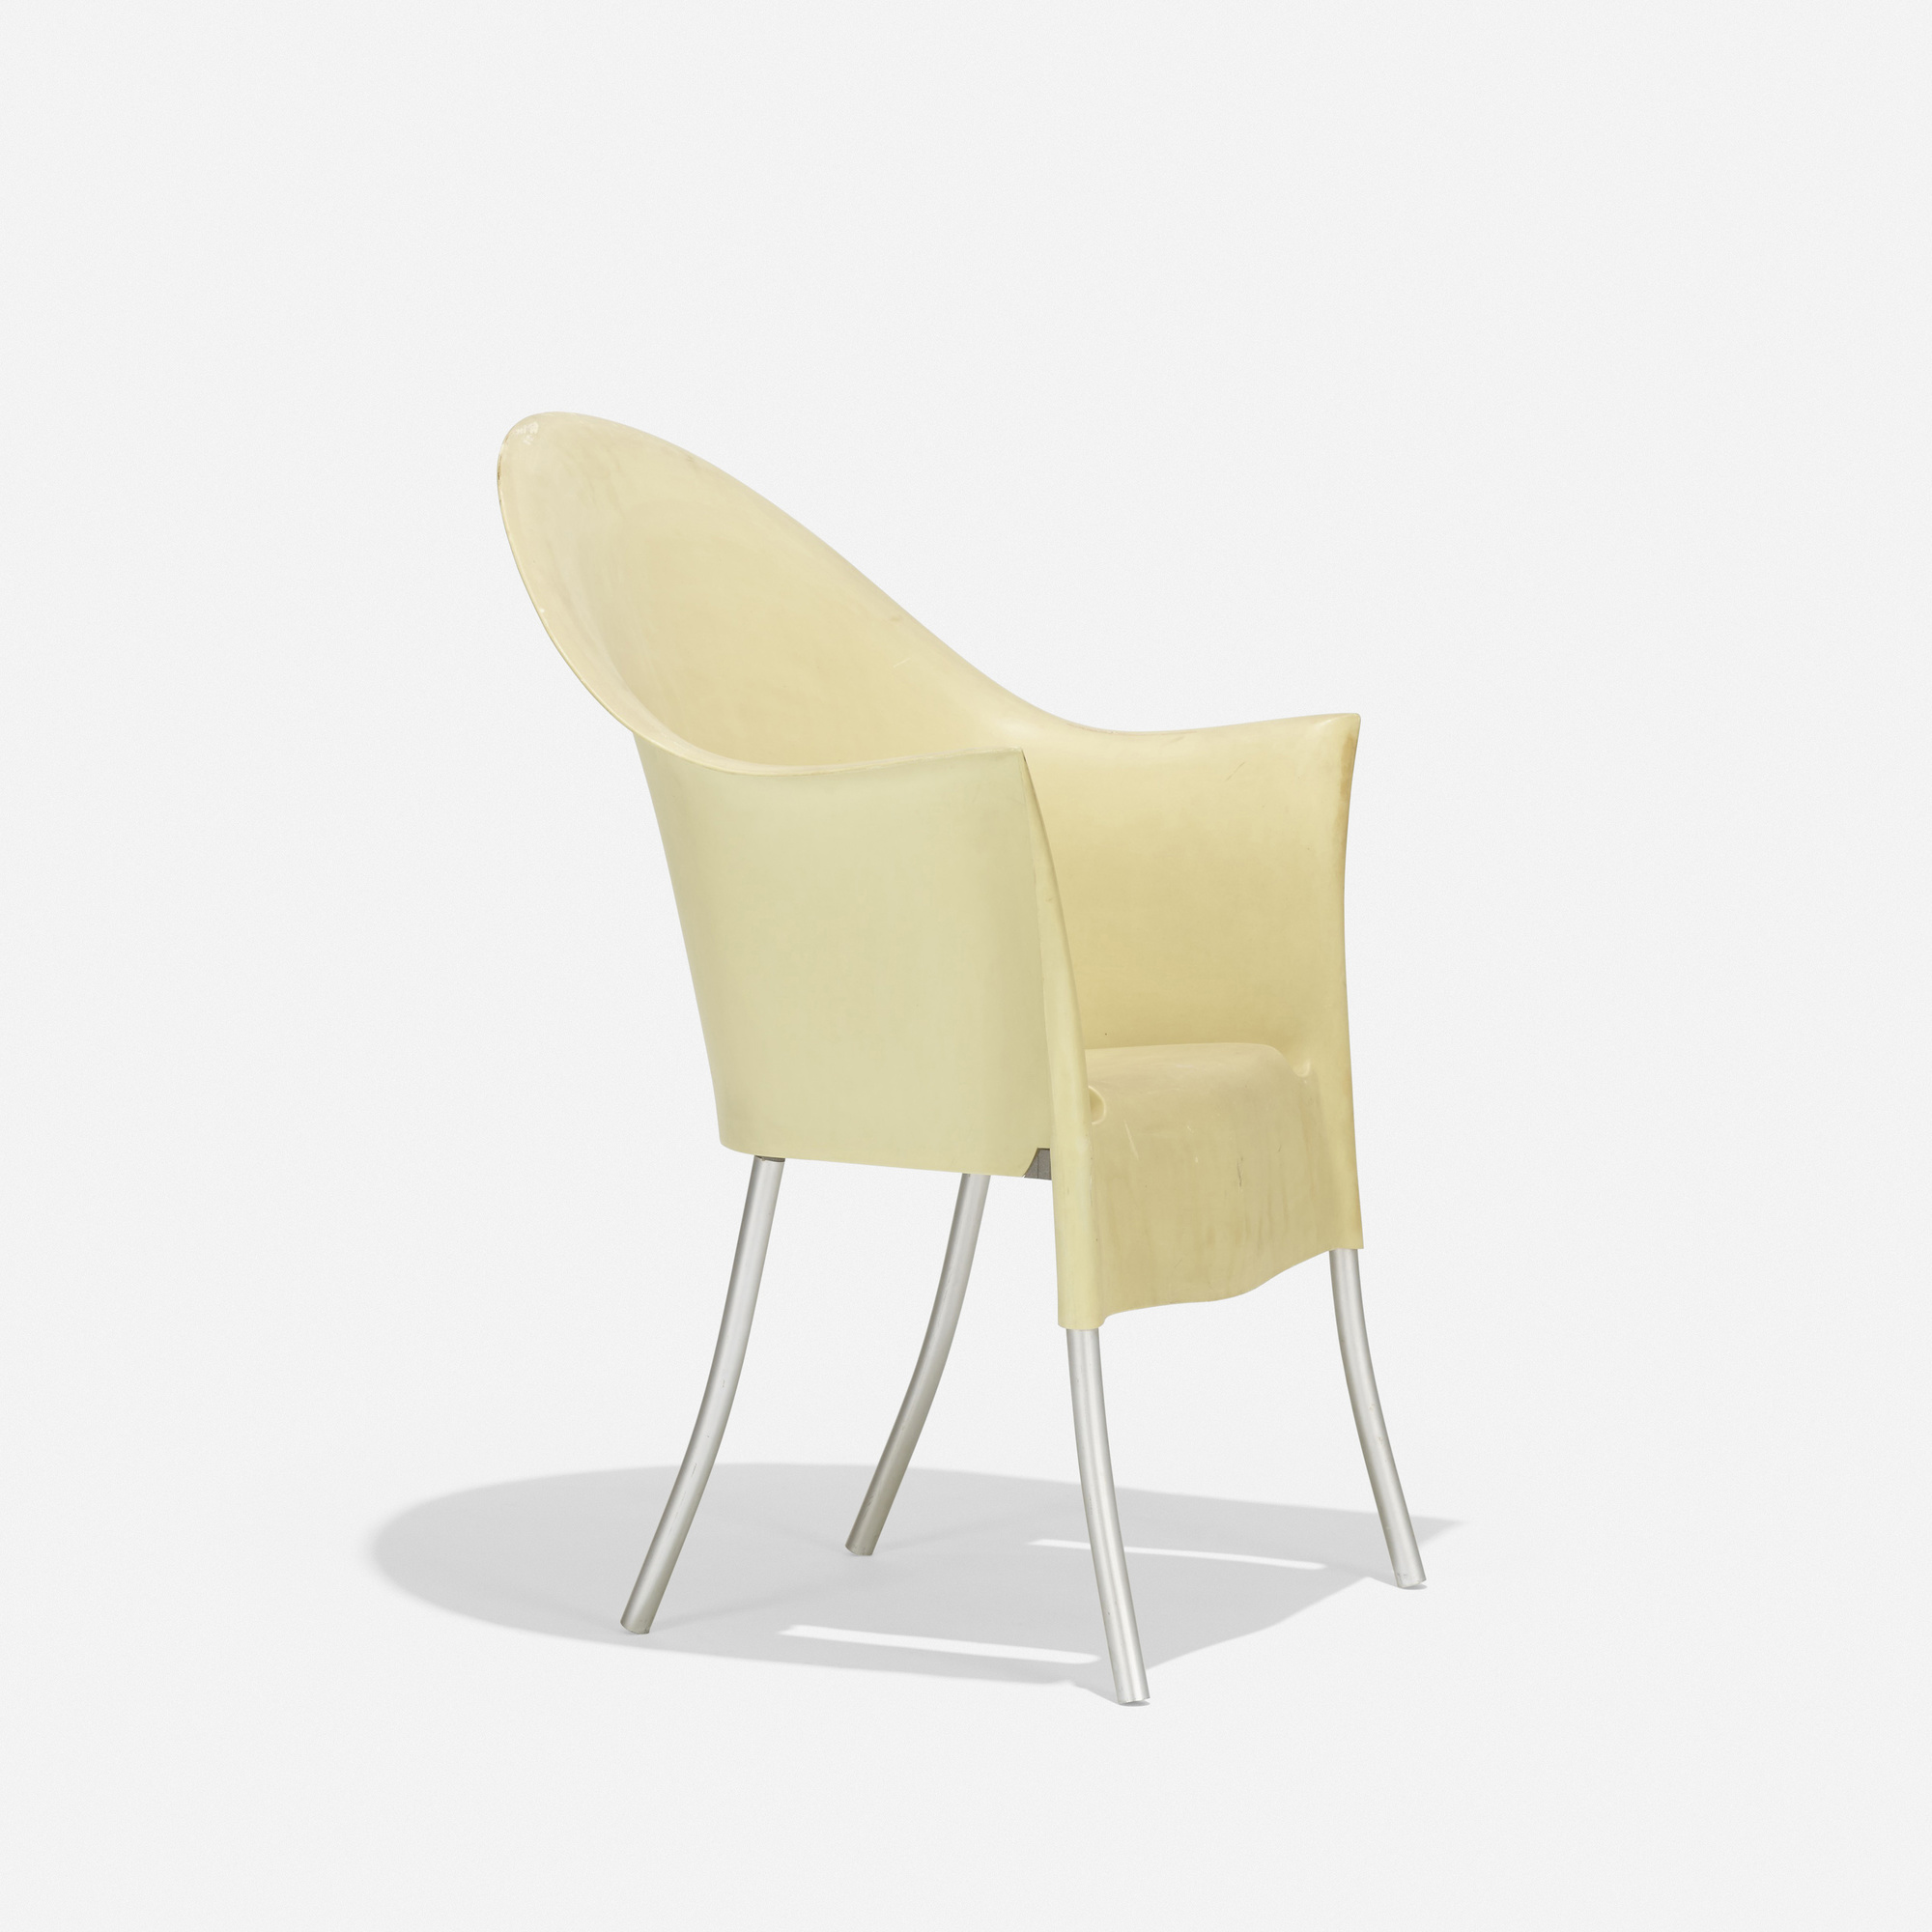 195: Philippe Starck / Lord Yo armchair (2 of 4)